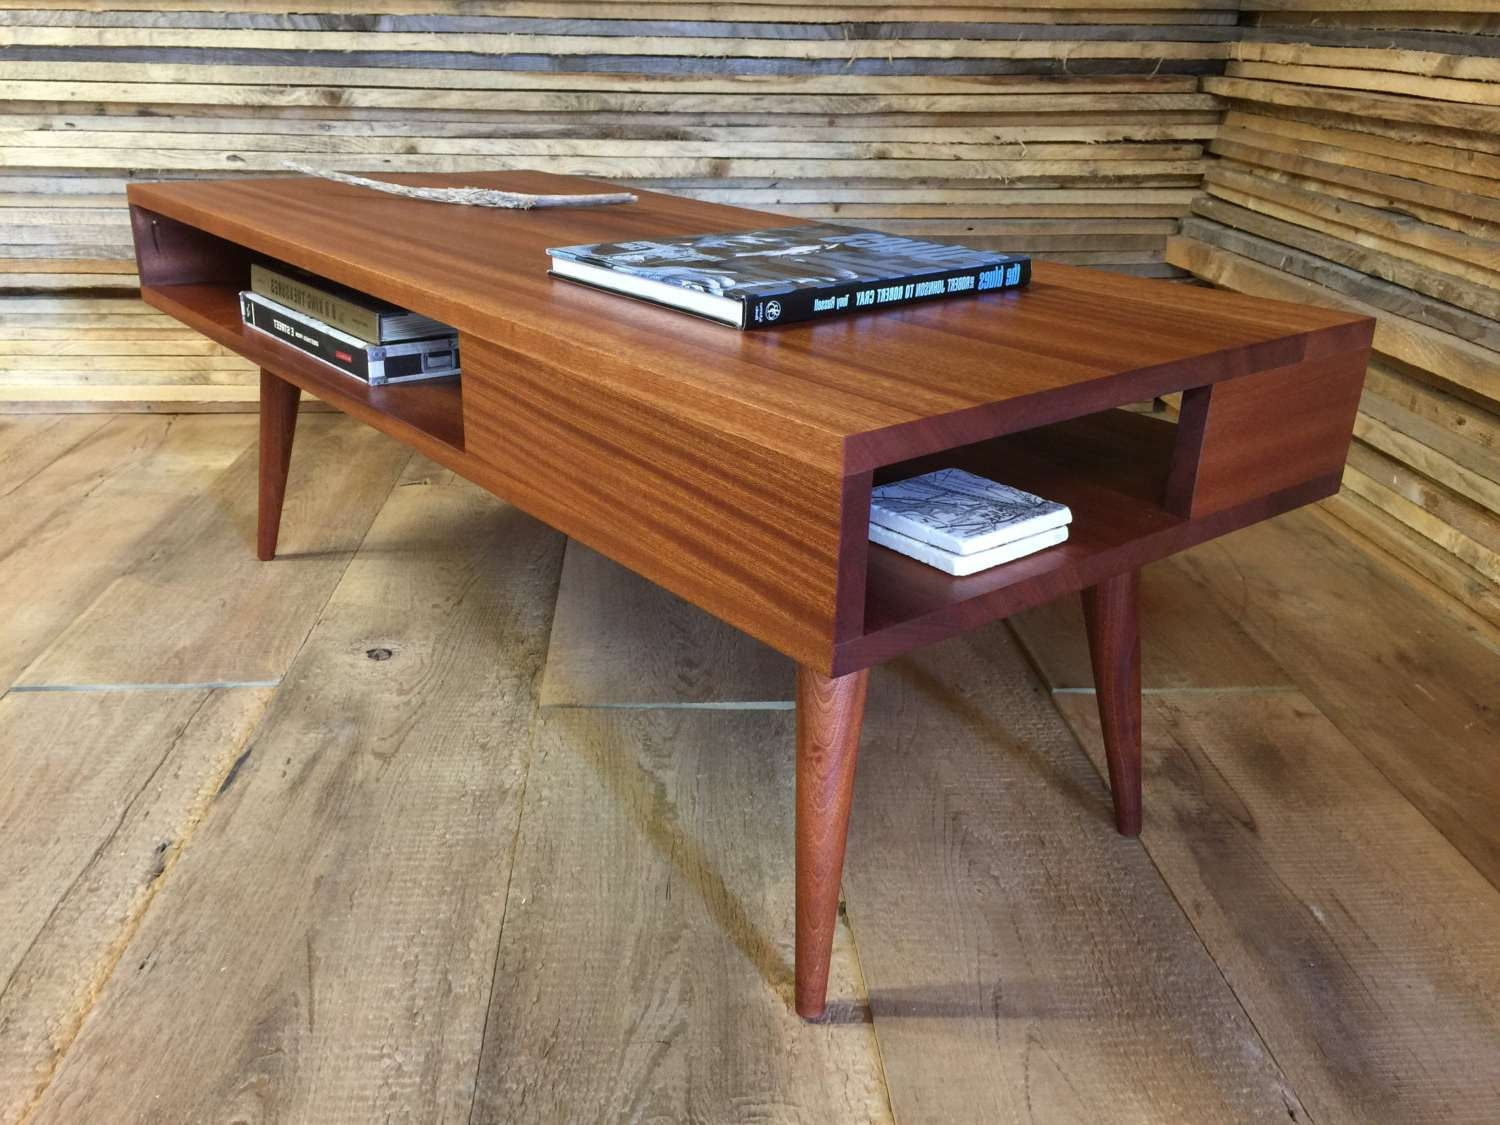 Thin Man Mid Century Modern Coffee Table With Storage Intended For Most Recently Released Modern Coffee Tables With Storage (View 20 of 20)